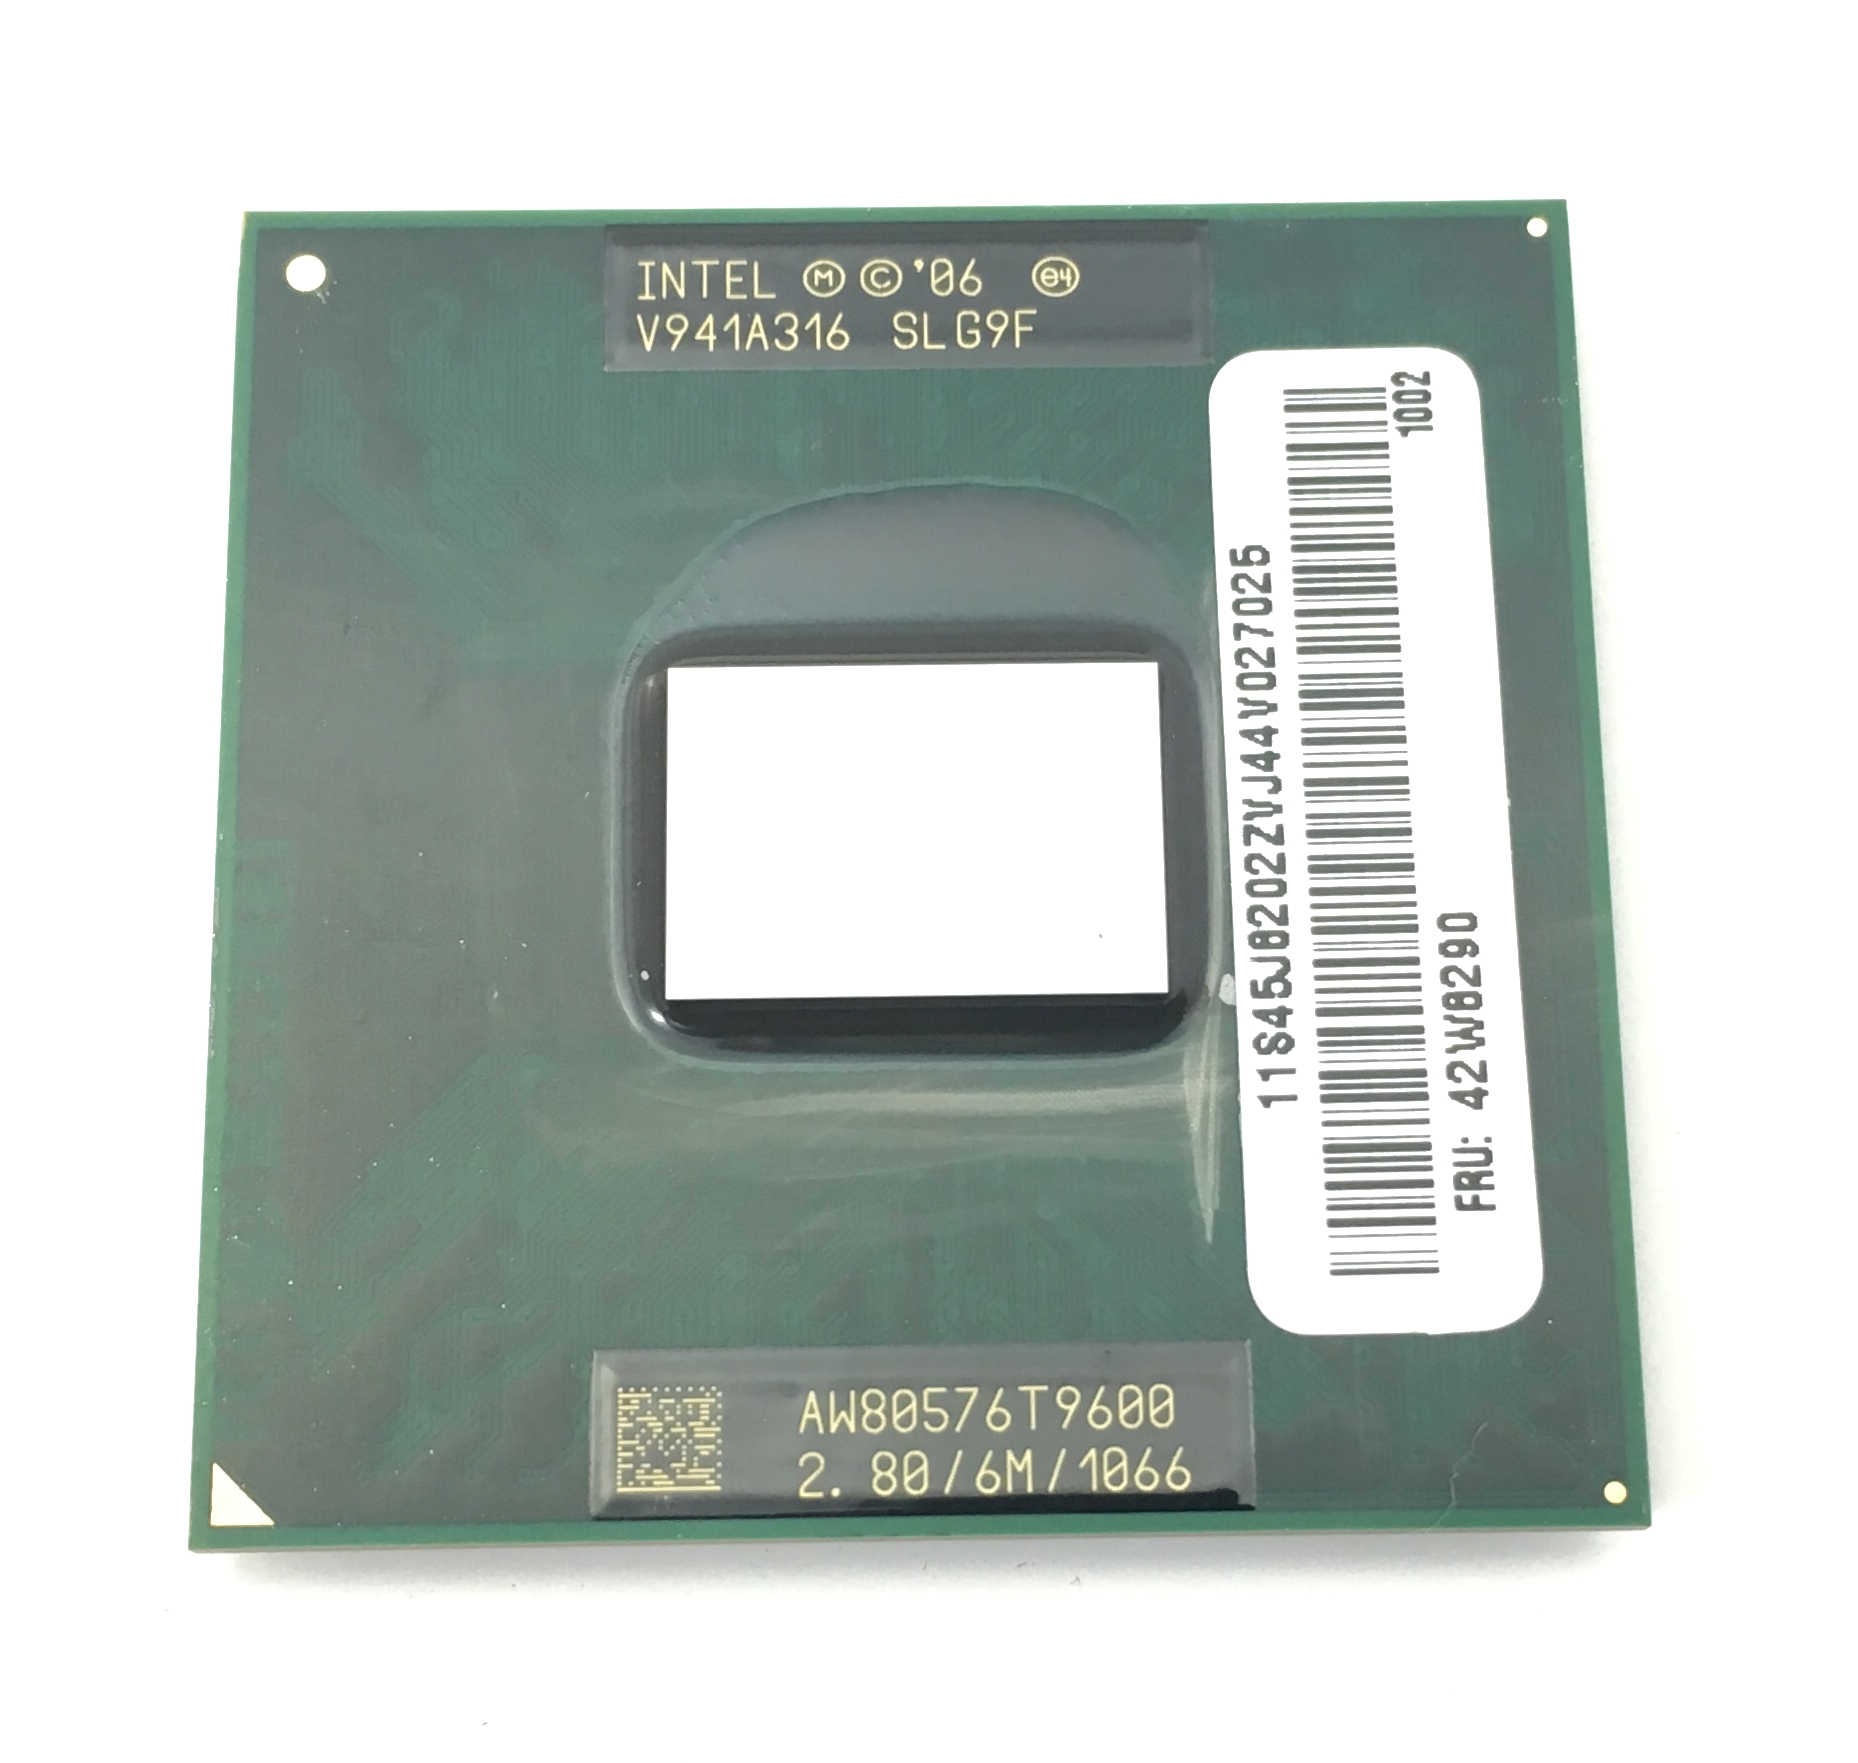 IBM Intel Core 2 Duo T9600 2.80GHz 6MB 1066MHz Pga478 Processor (42W8290)